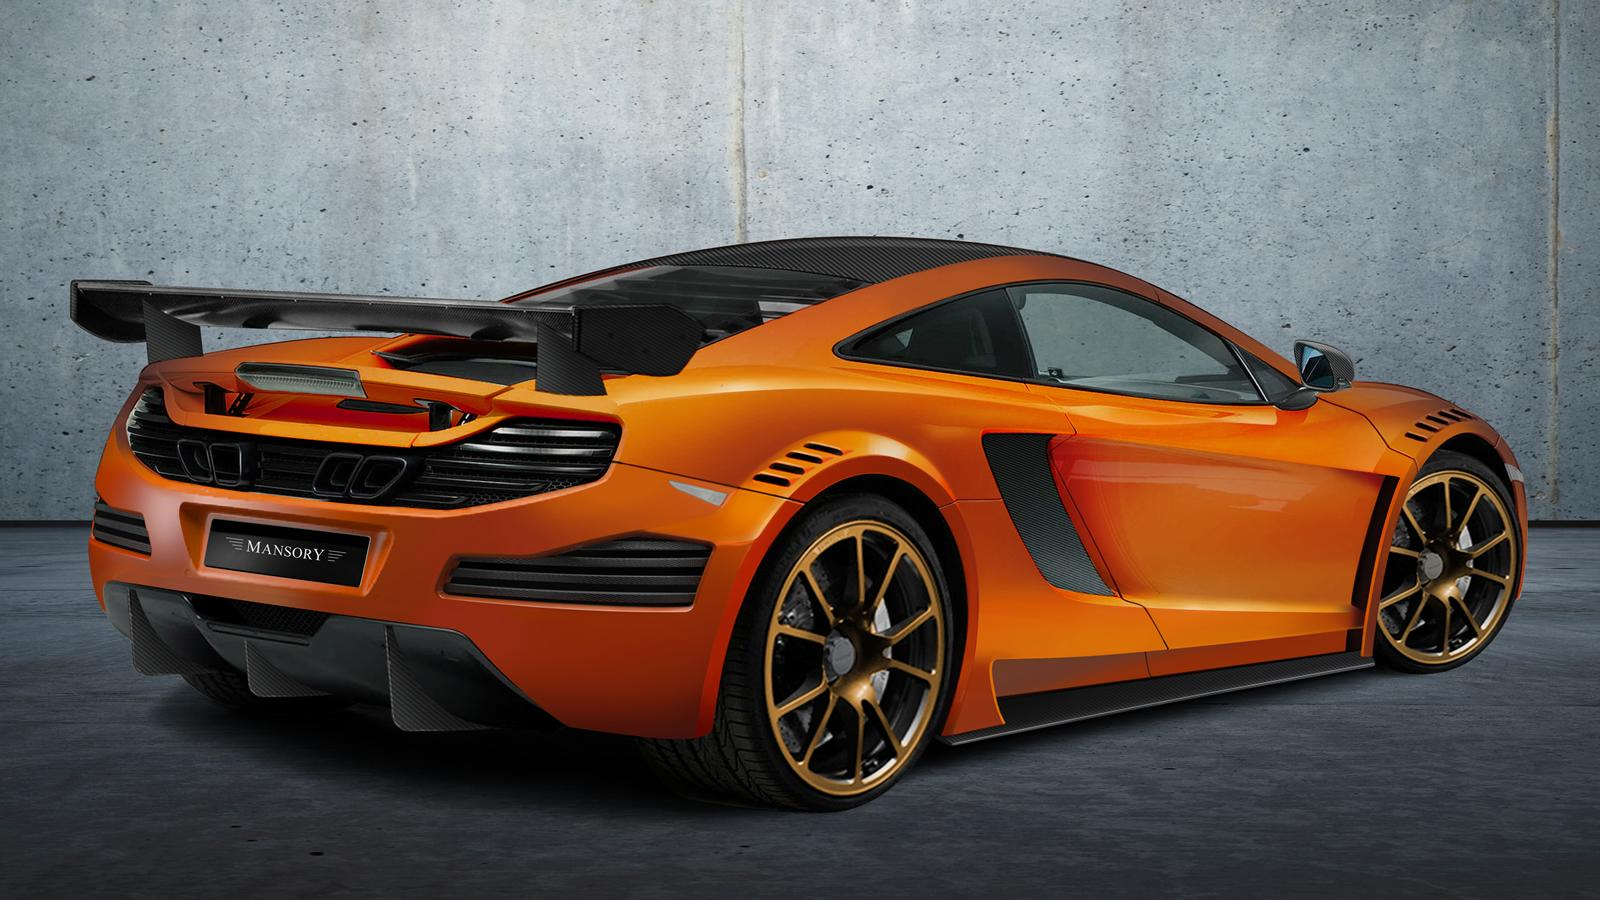 McLaren MP4-12C tuning racing Pictures Gallery Wallpapers Download